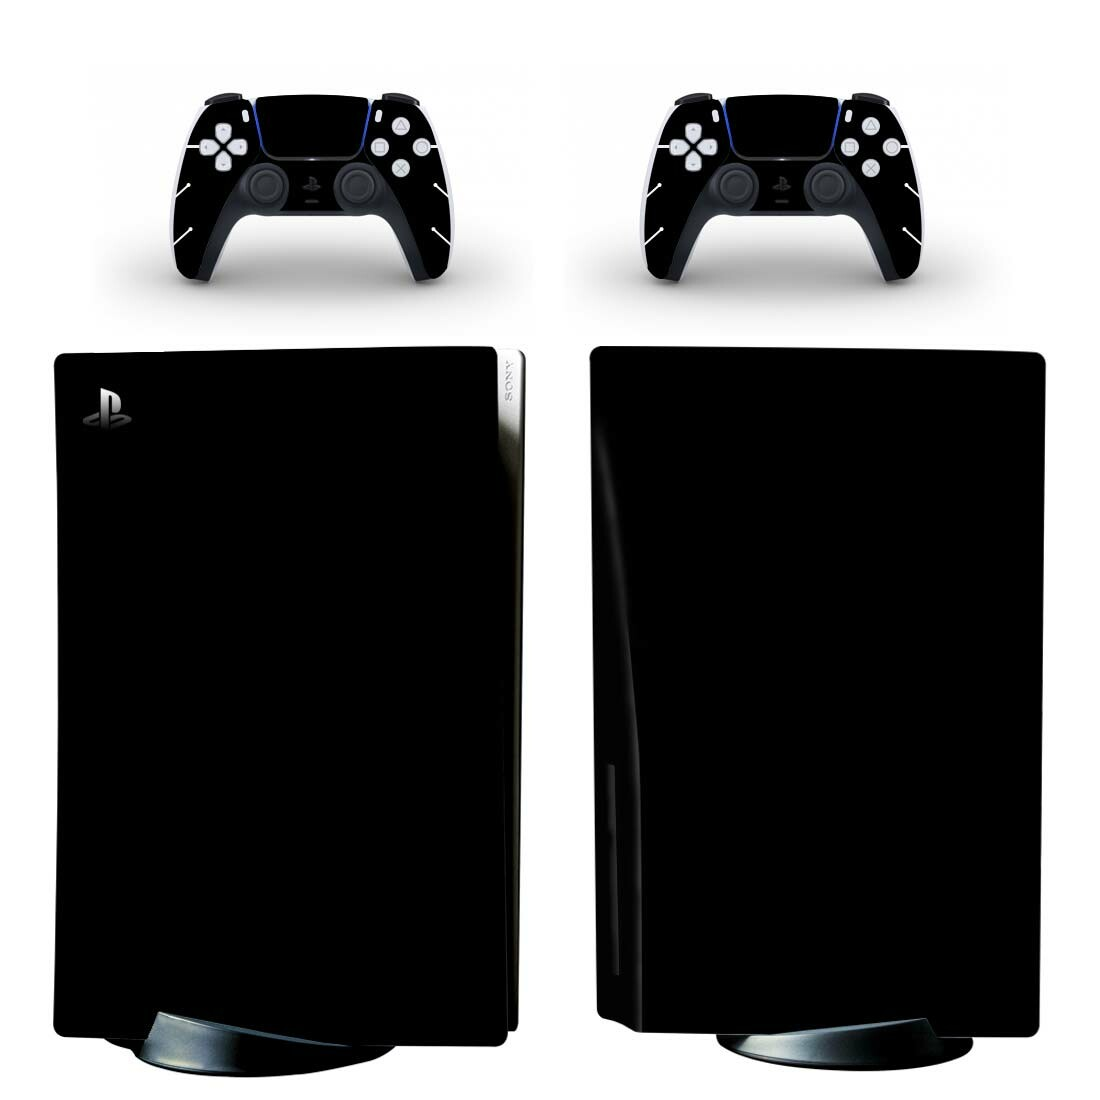 Pure Black PS5 Standard Disc Skin Sticker Decal Cover for PlayStation 5 Console and 2 Controllers PS5 Disk Skin Sticker Vinyl